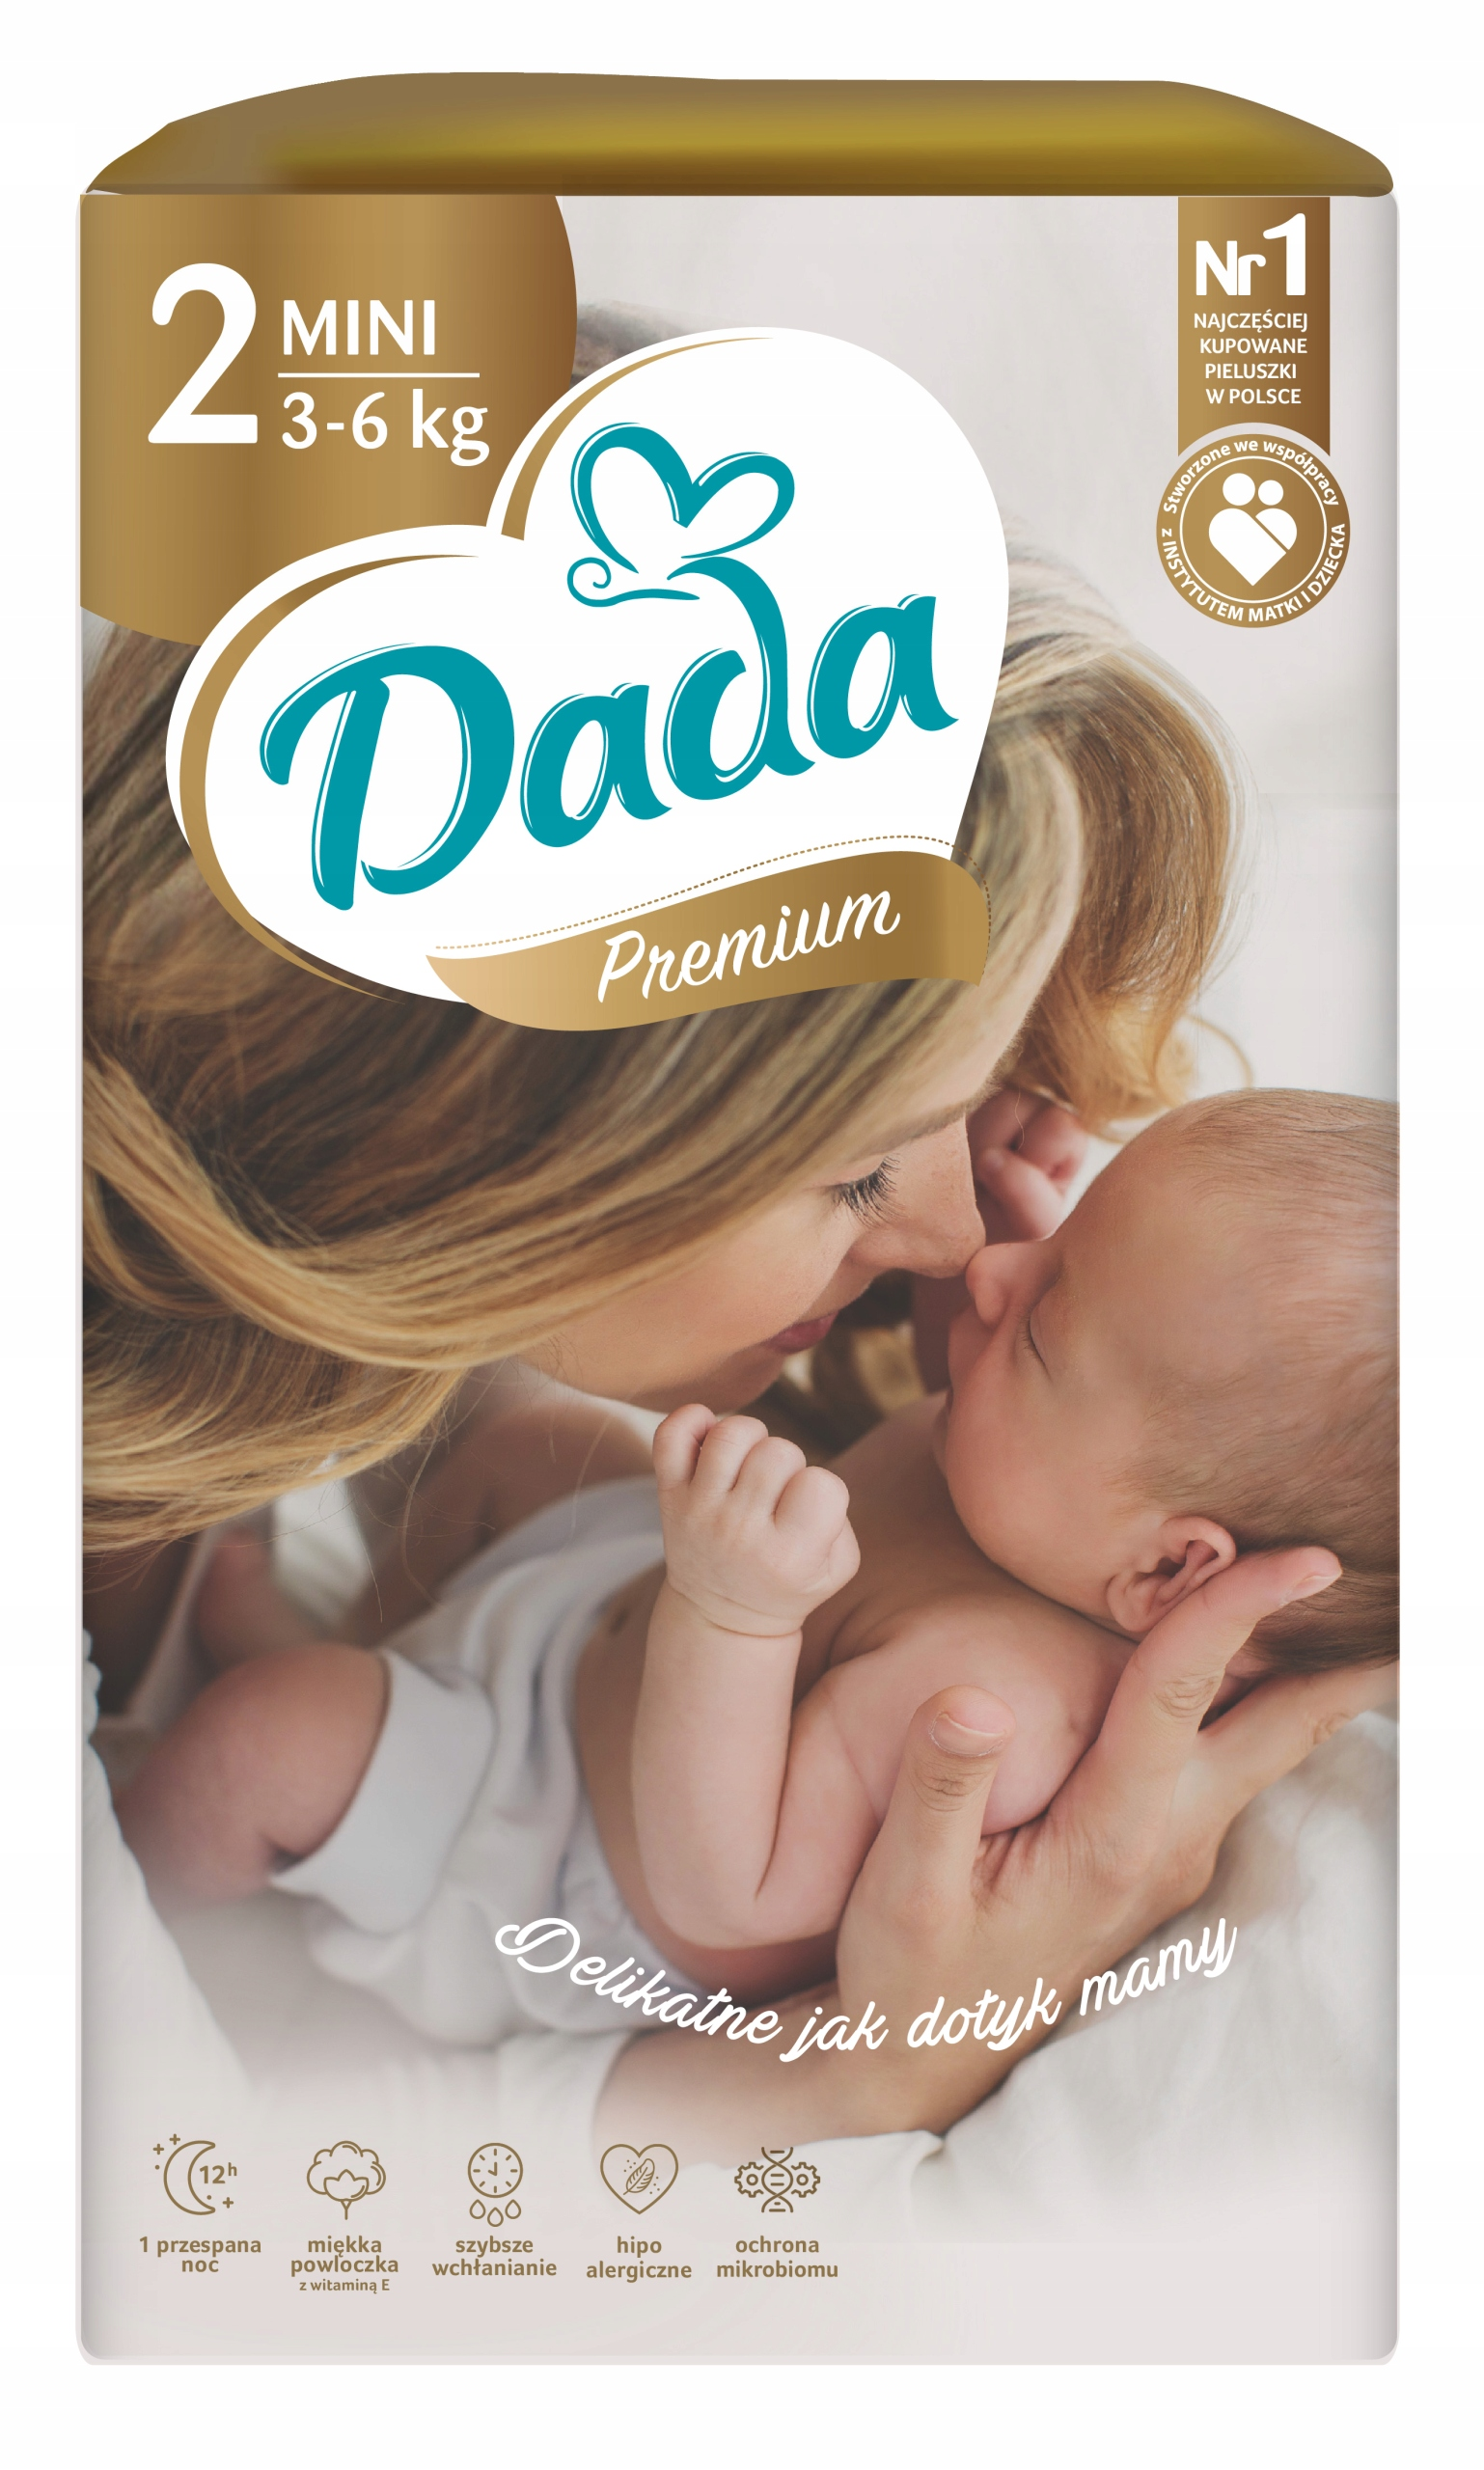 Подгузники Dada Extra Care 2 Mini 3-6 кг 43 шт.